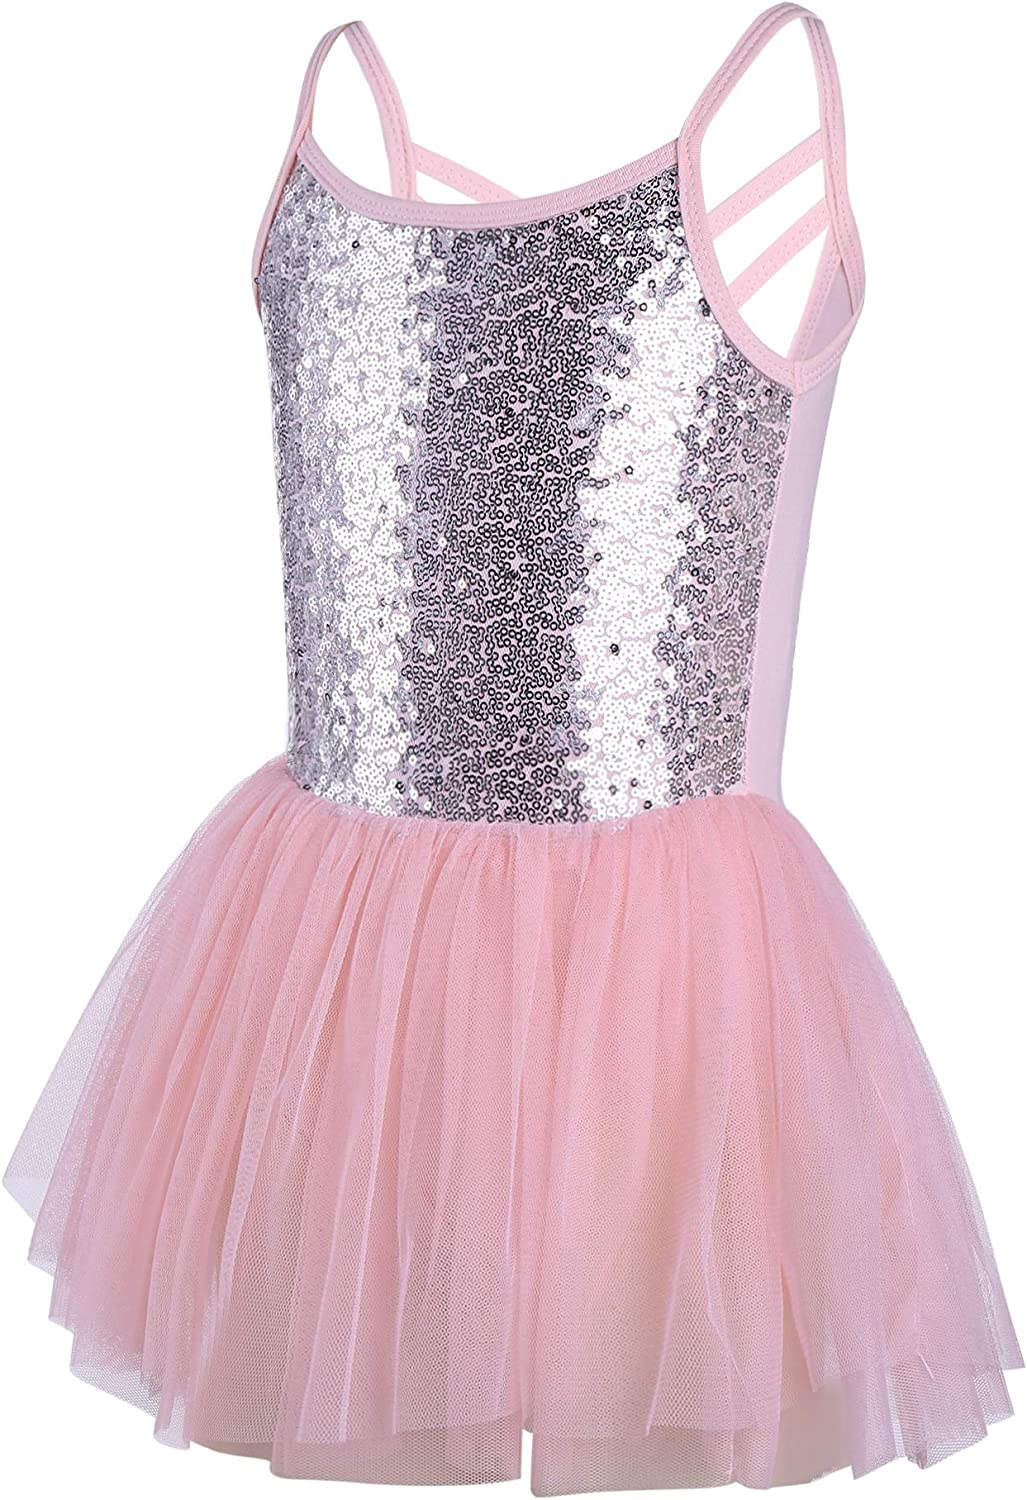 Zaclotre Girls Cross Strap Tutu Skirted Leotard Glitter Ballet Dance Dress